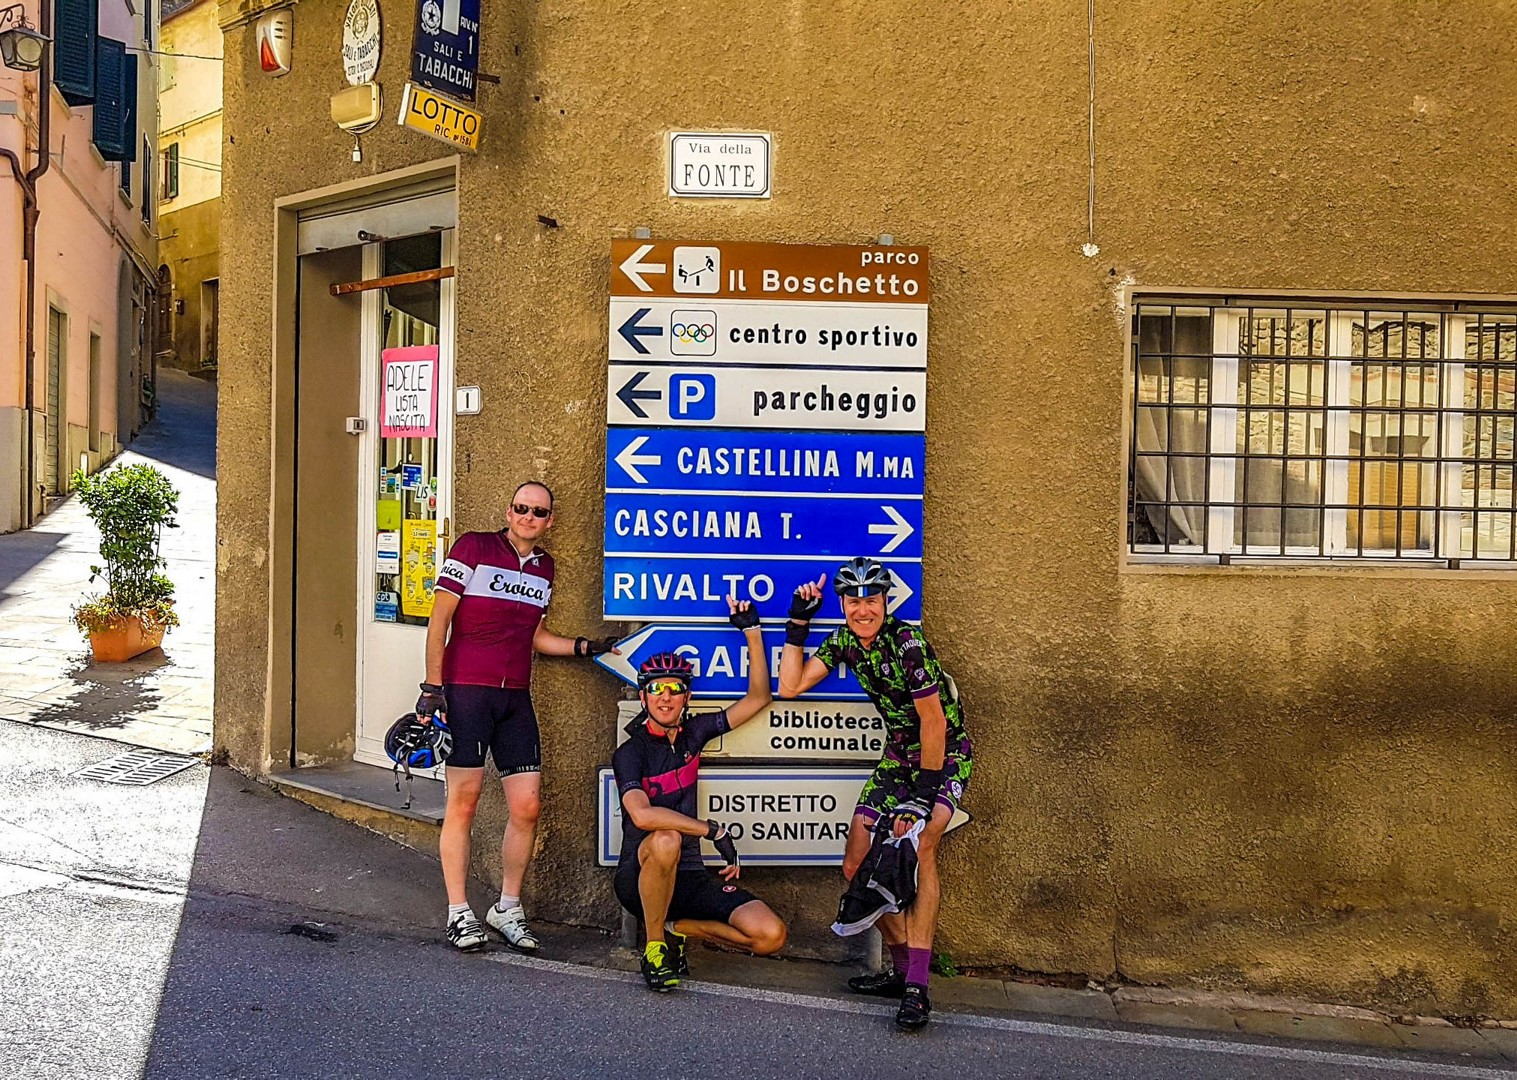 20170922_144954.jpg - Italy - Tuscany - Giro della Toscana - Self-Guided Road Cycling Holiday - Road Cycling